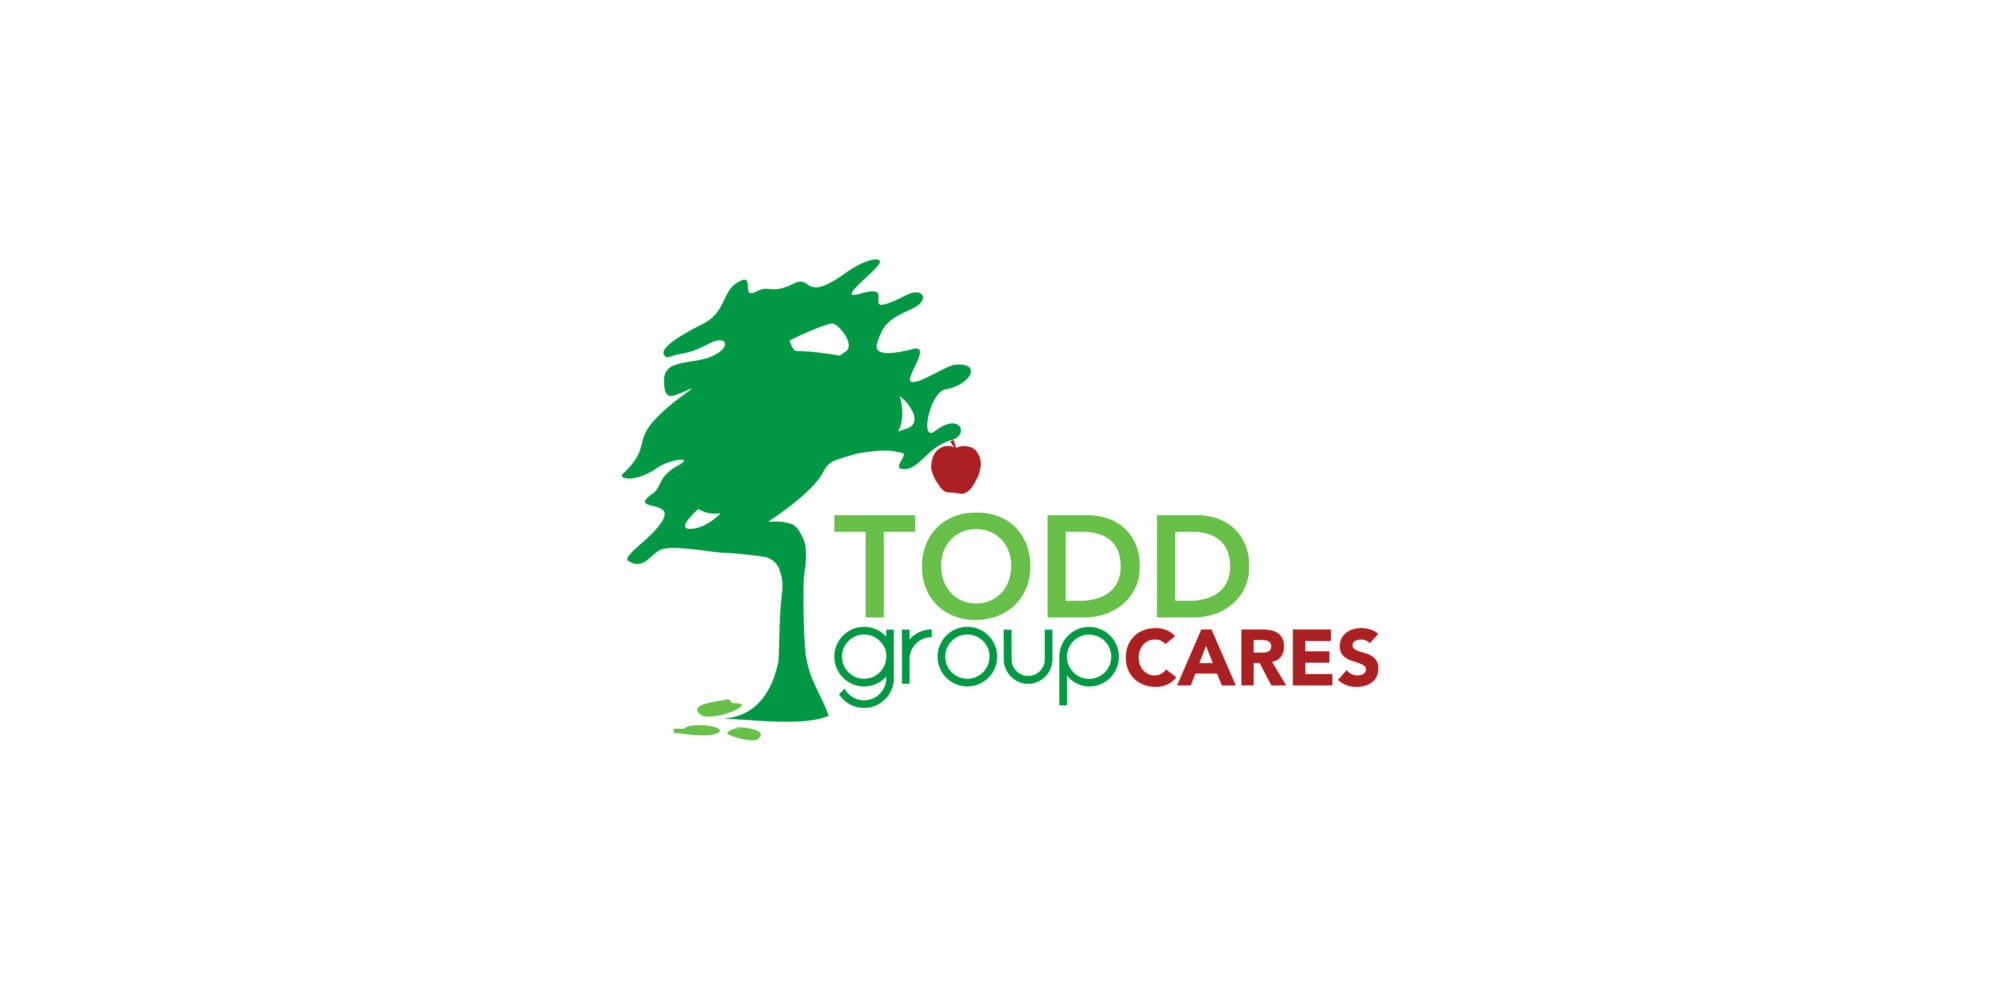 The Todd Group Cares Logo